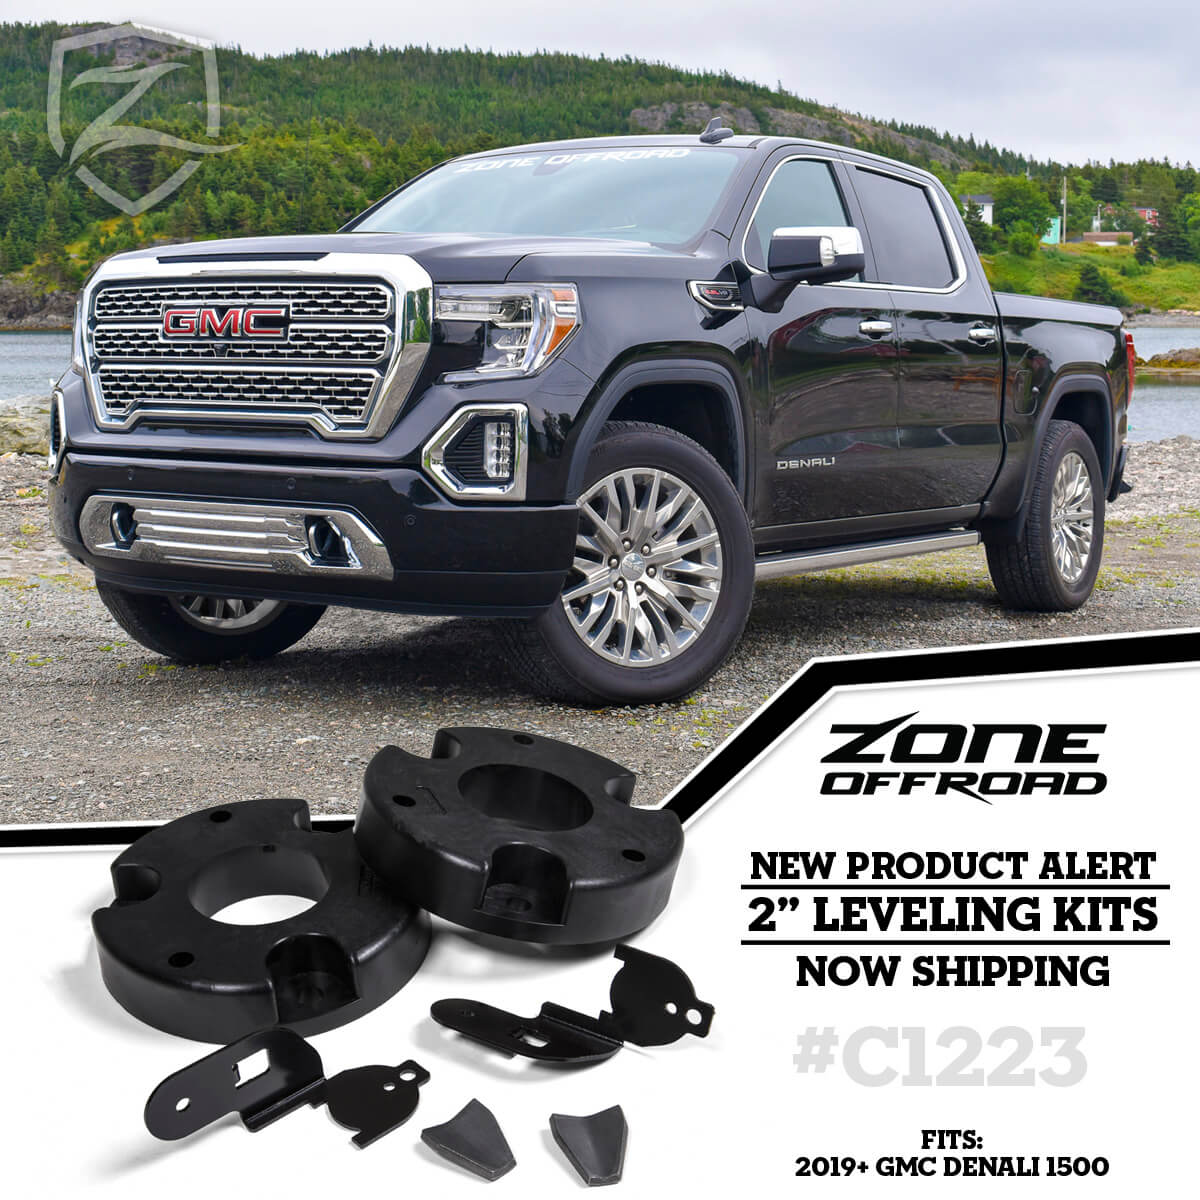 2 Leveling Kit For 2019 2020 Gmc Denali 1500 Trucks Npa 165 Zone Offroad News